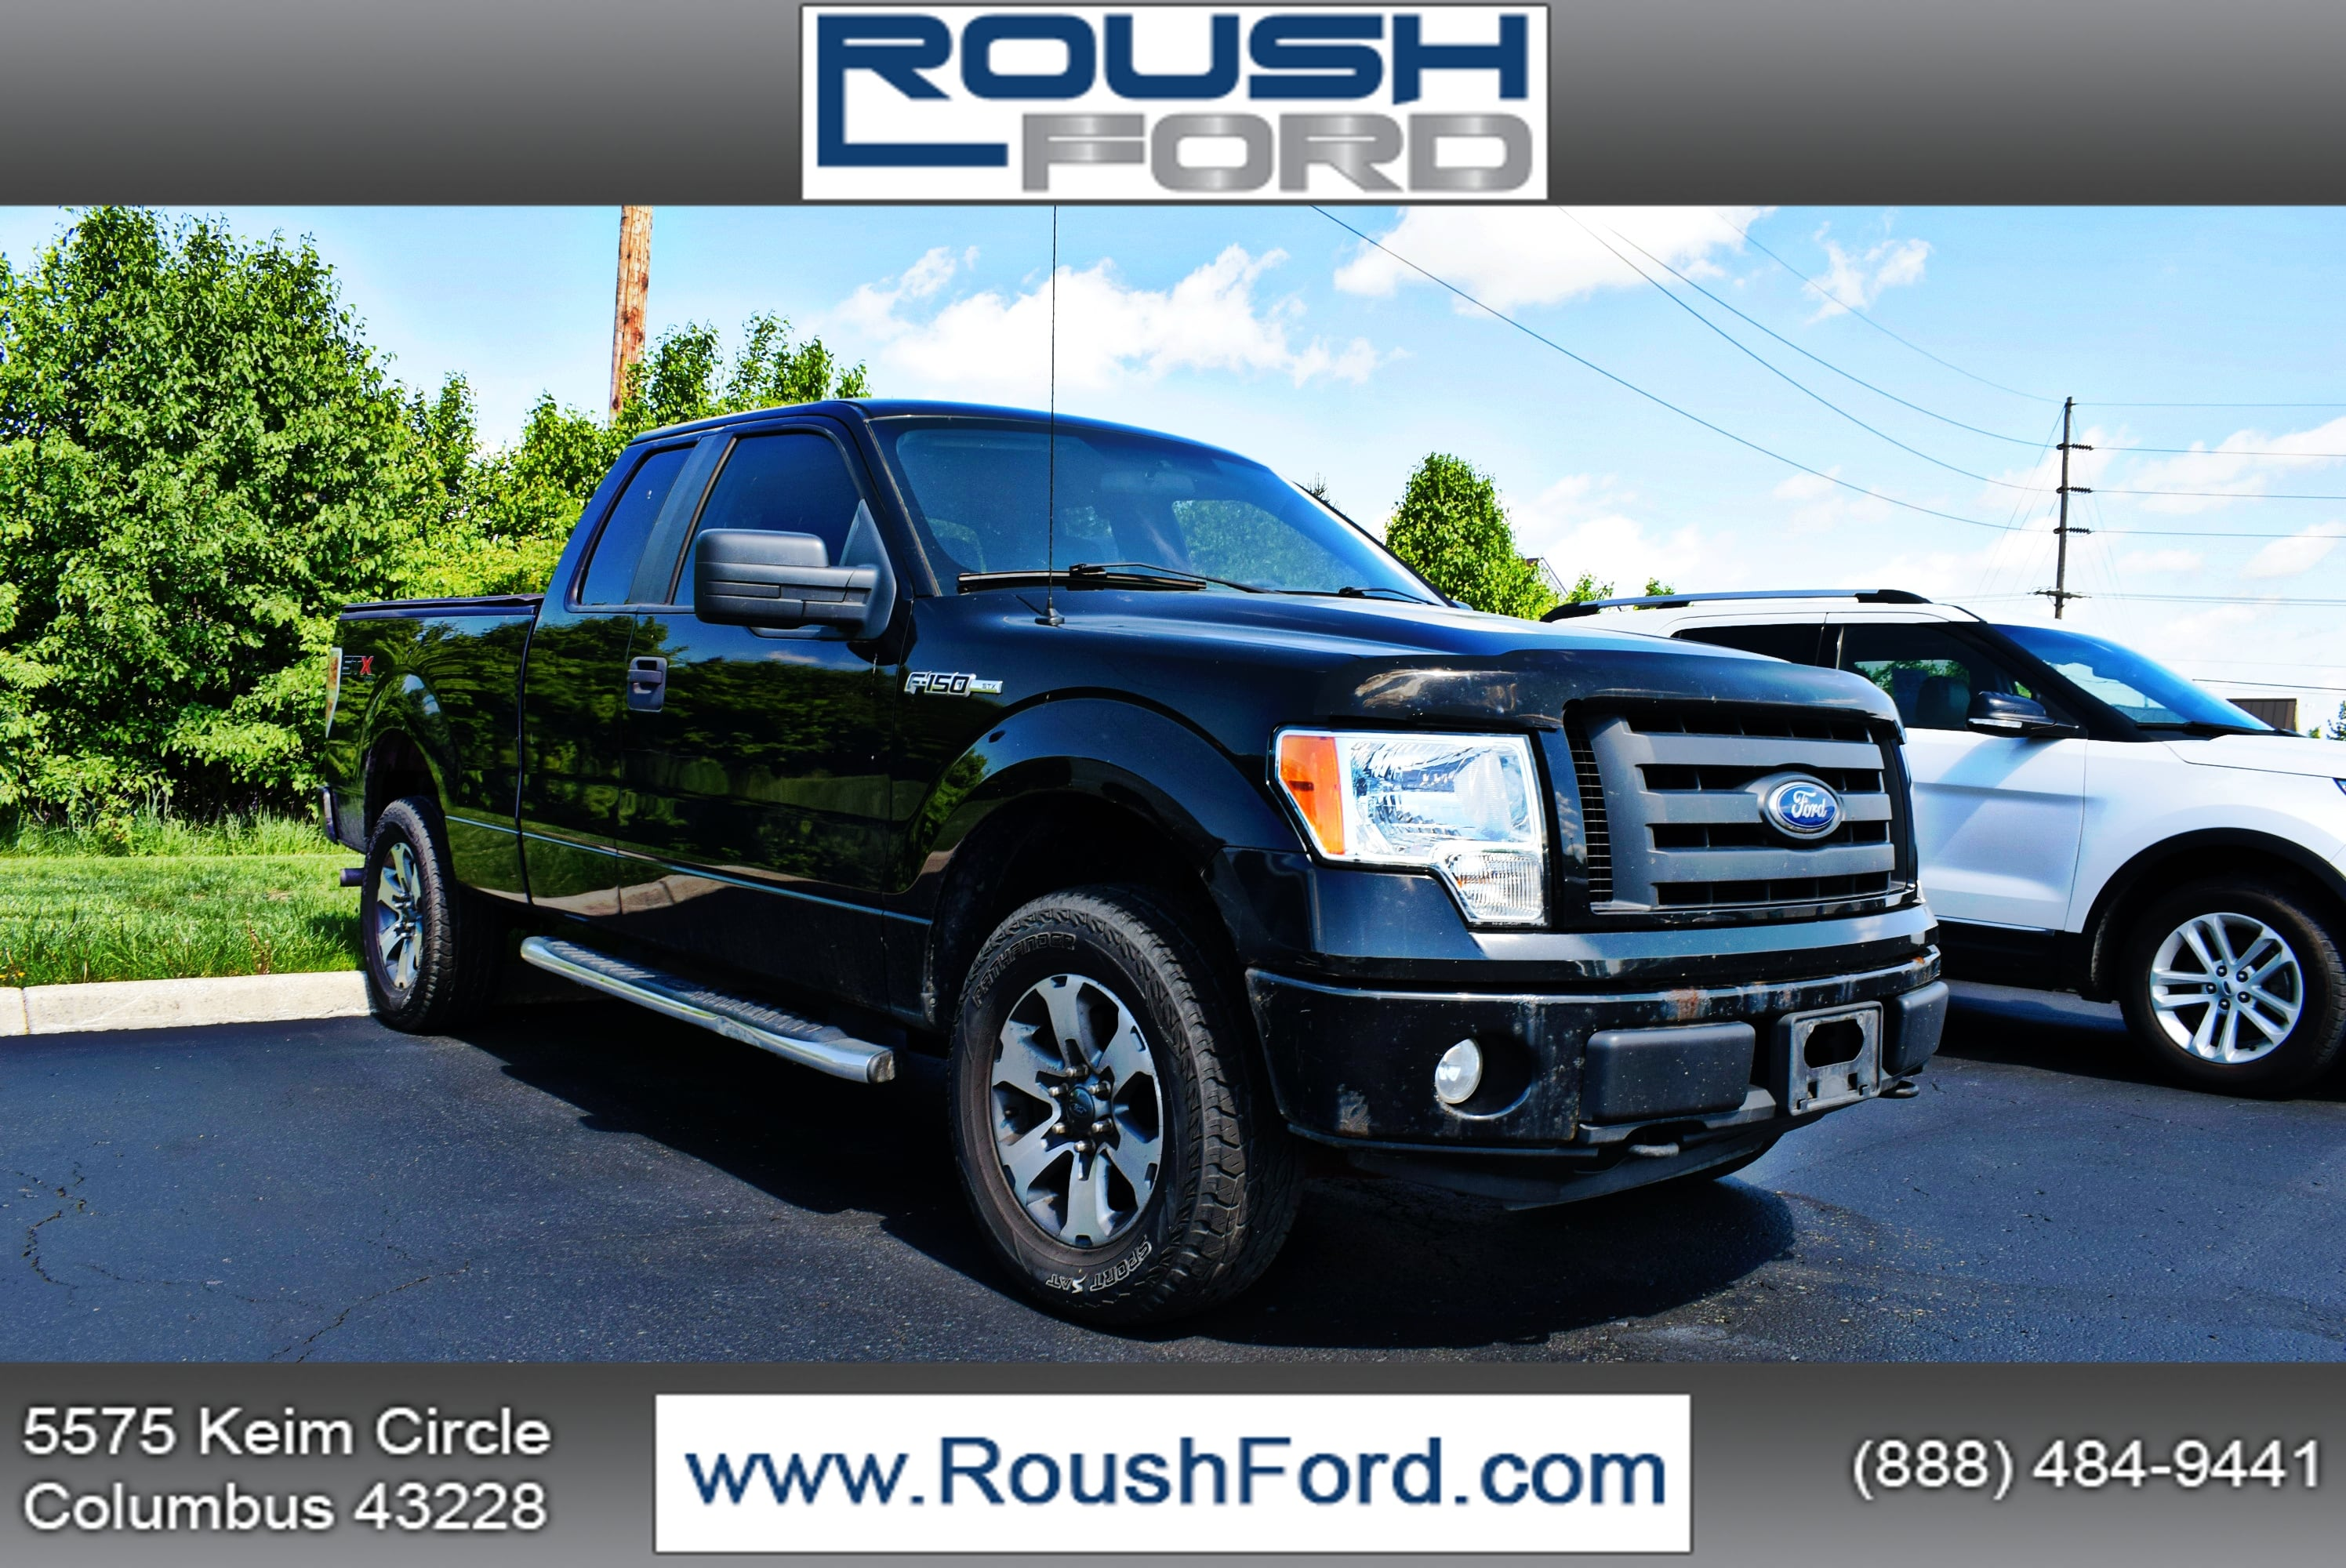 2010 F-150 Super Cab 4x4, Pickup #T17975B - photo 1